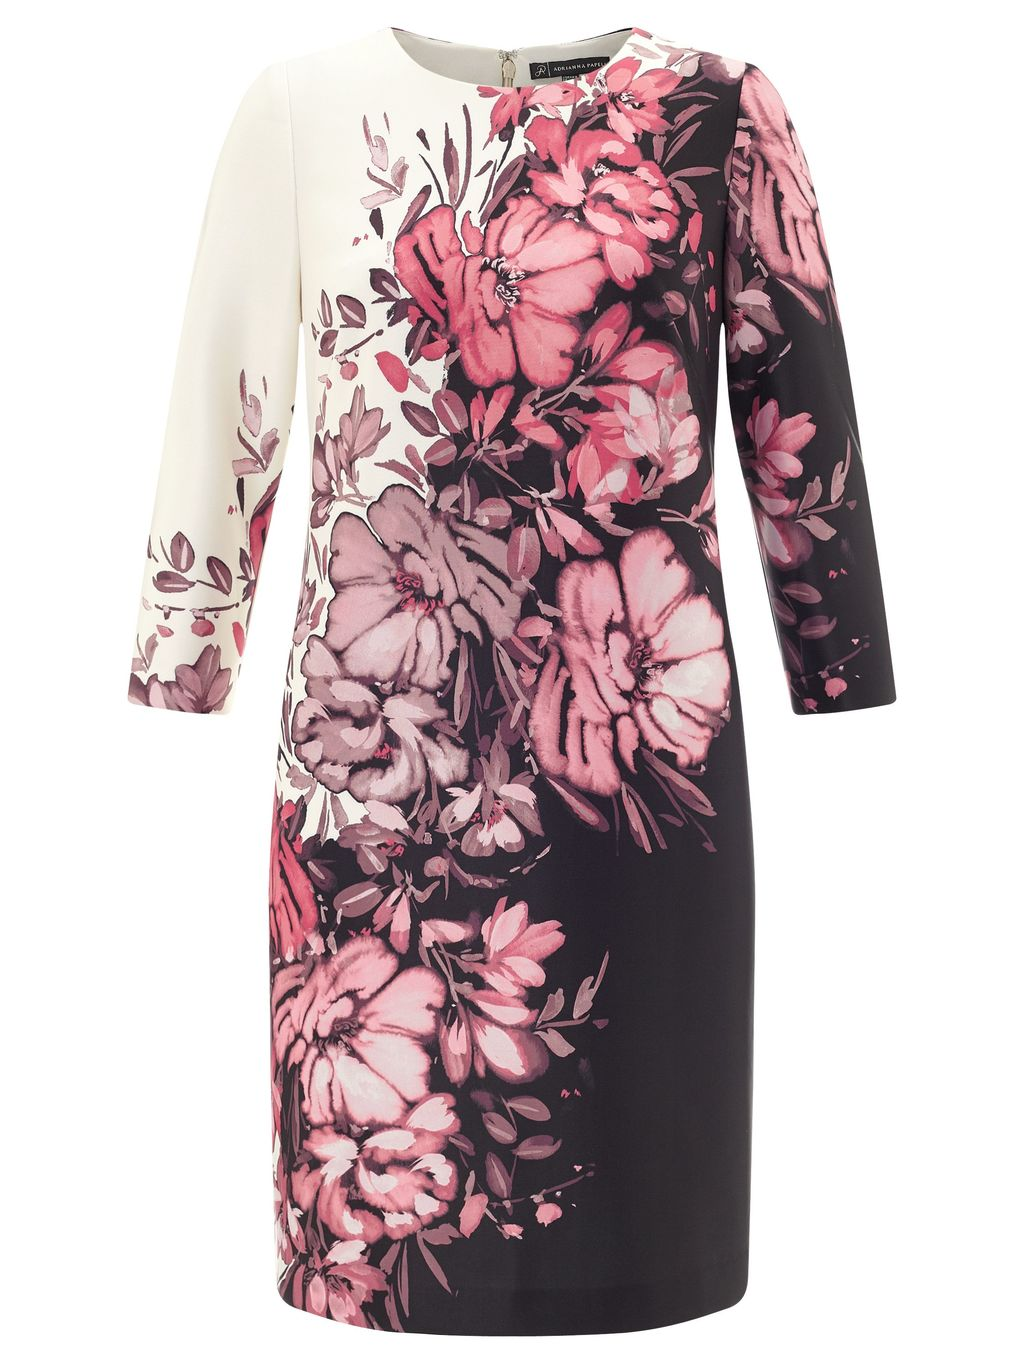 Black And Pink Floral Dress, Multi Coloured - style: shift; predominant colour: pink; secondary colour: pink; length: just above the knee; fit: body skimming; fibres: polyester/polyamide - 100%; occasions: occasion; neckline: crew; sleeve length: 3/4 length; sleeve style: standard; pattern type: fabric; pattern size: big & busy; pattern: florals; texture group: other - light to midweight; multicoloured: multicoloured; season: a/w 2015